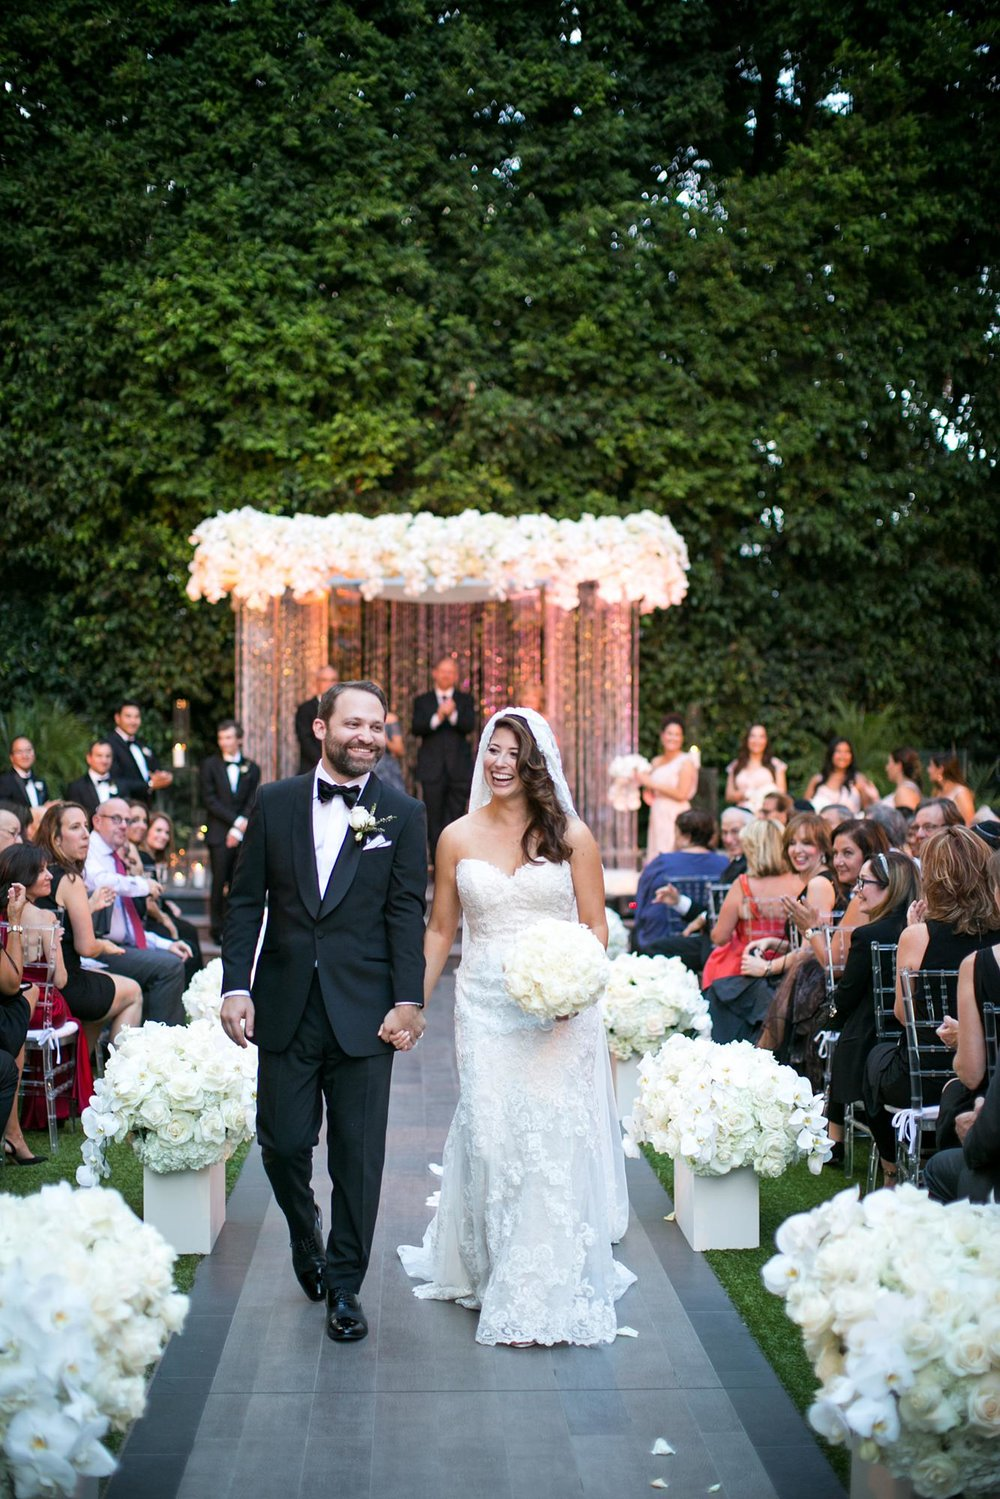 Four Seasons Beverly Hills Wedding | Miki & Sonja Photography | mikiandsonja.com